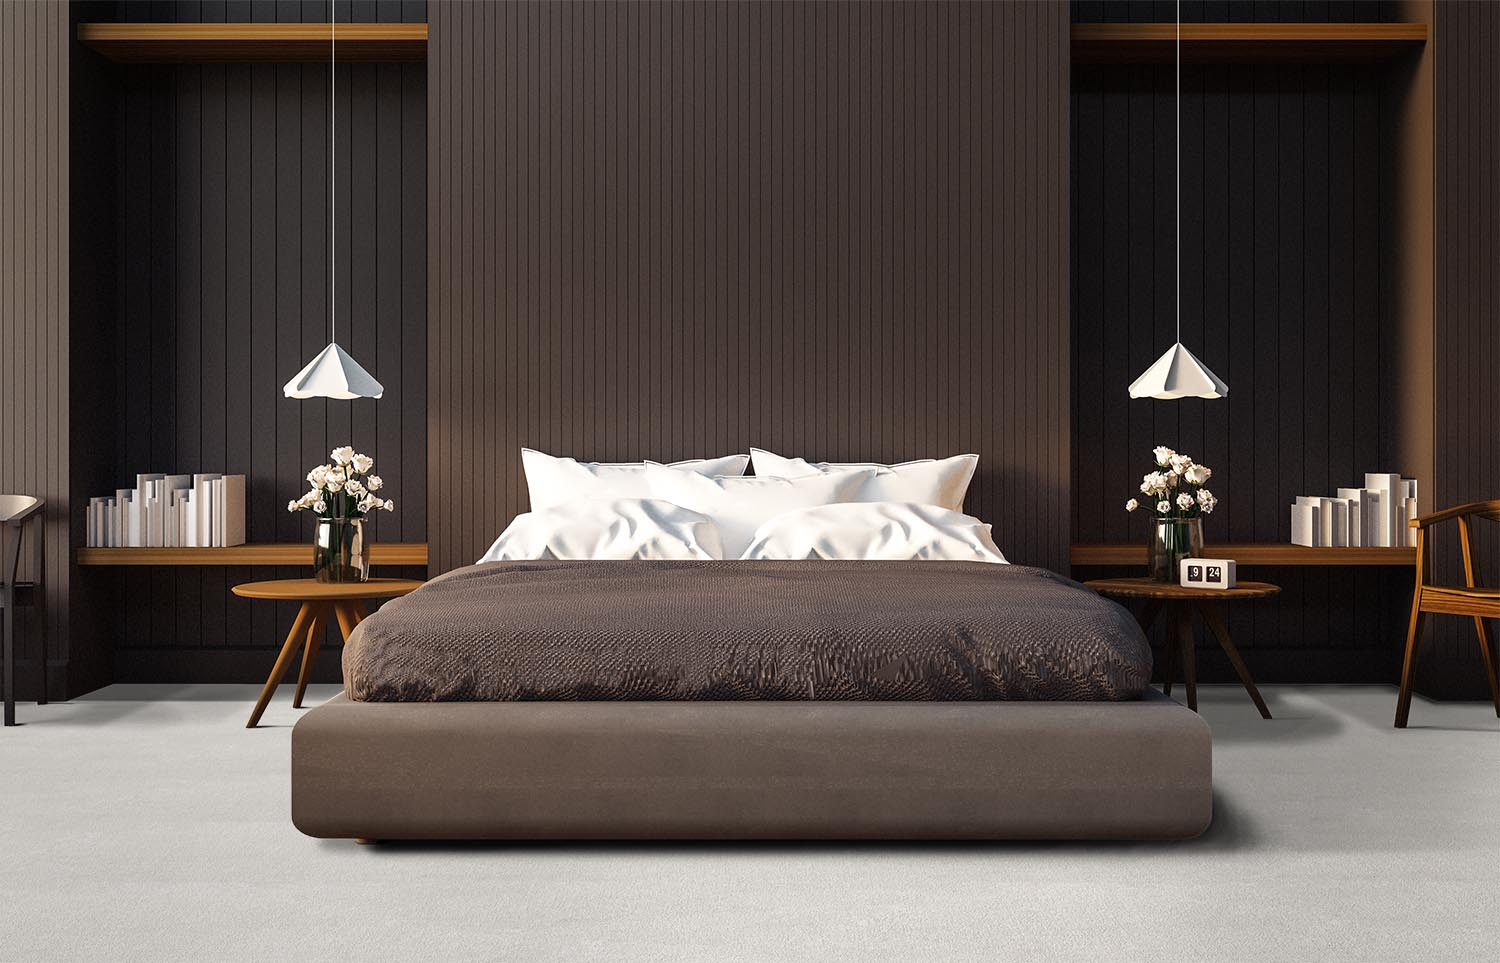 Softology - S201 - Plume contemporary bedroom